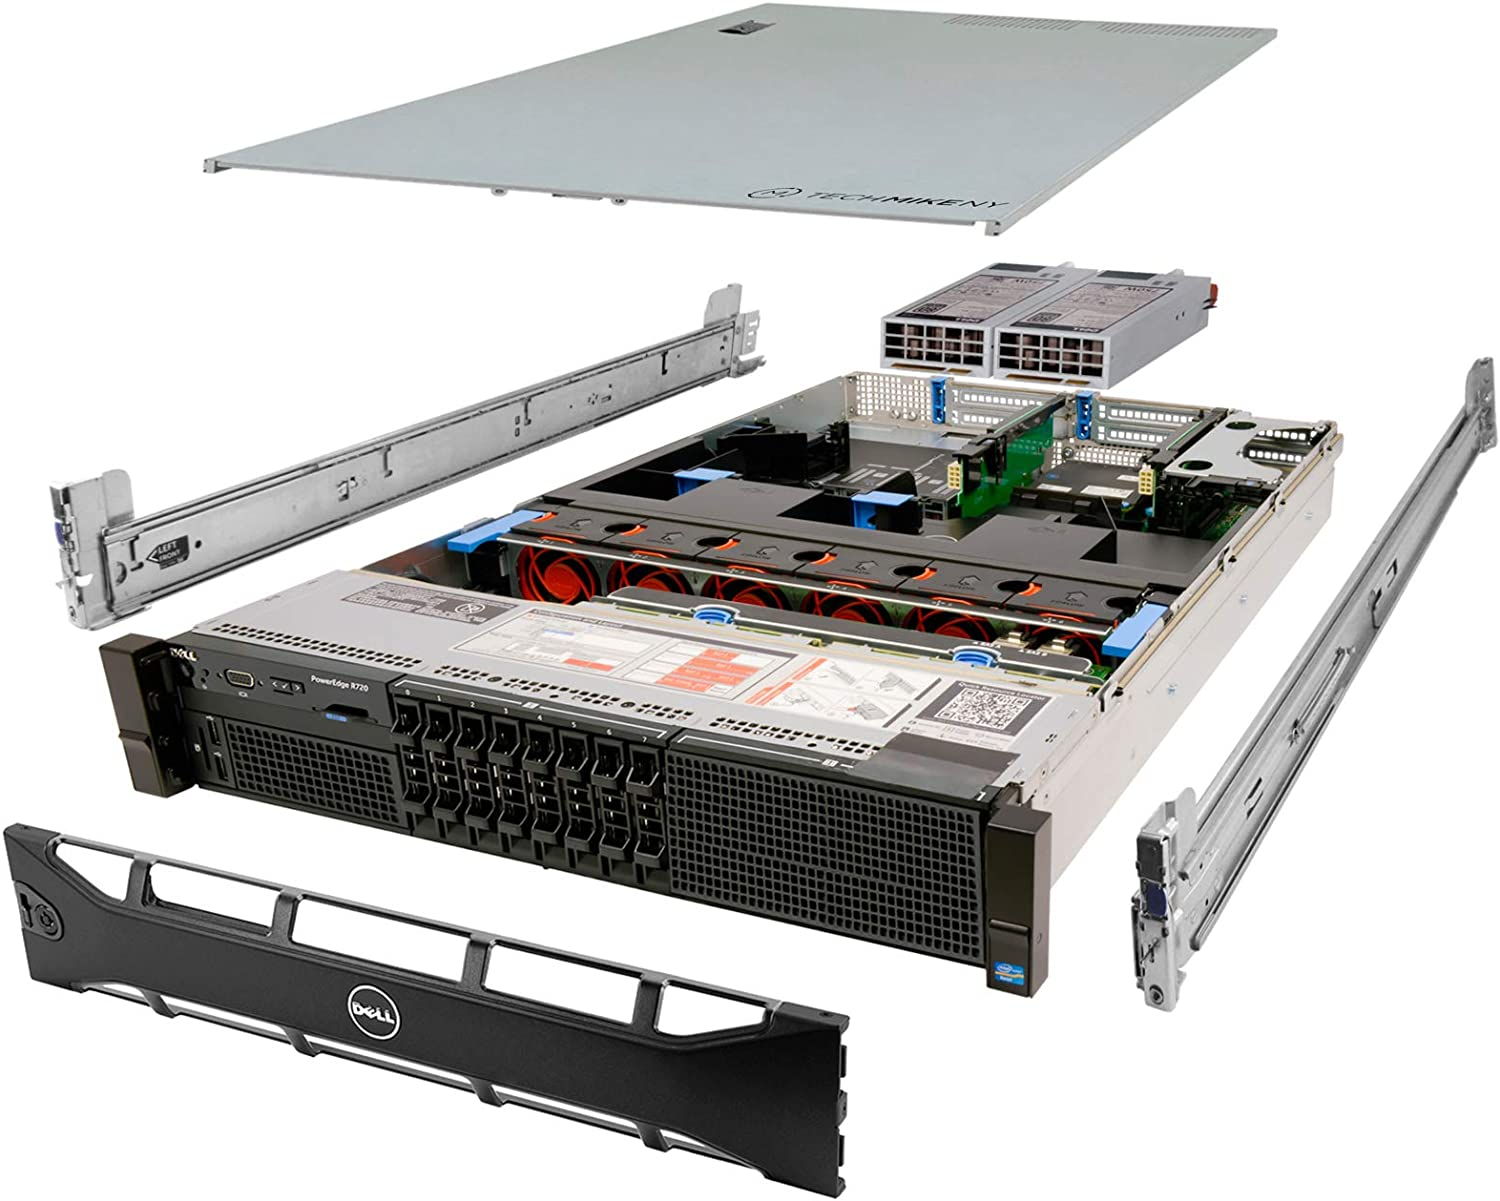 Dell PowerEdge R720 Server 2X E5-2643 3.30Ghz 8-Core 72GB 8X 300GB H710 Rails (Renewed)